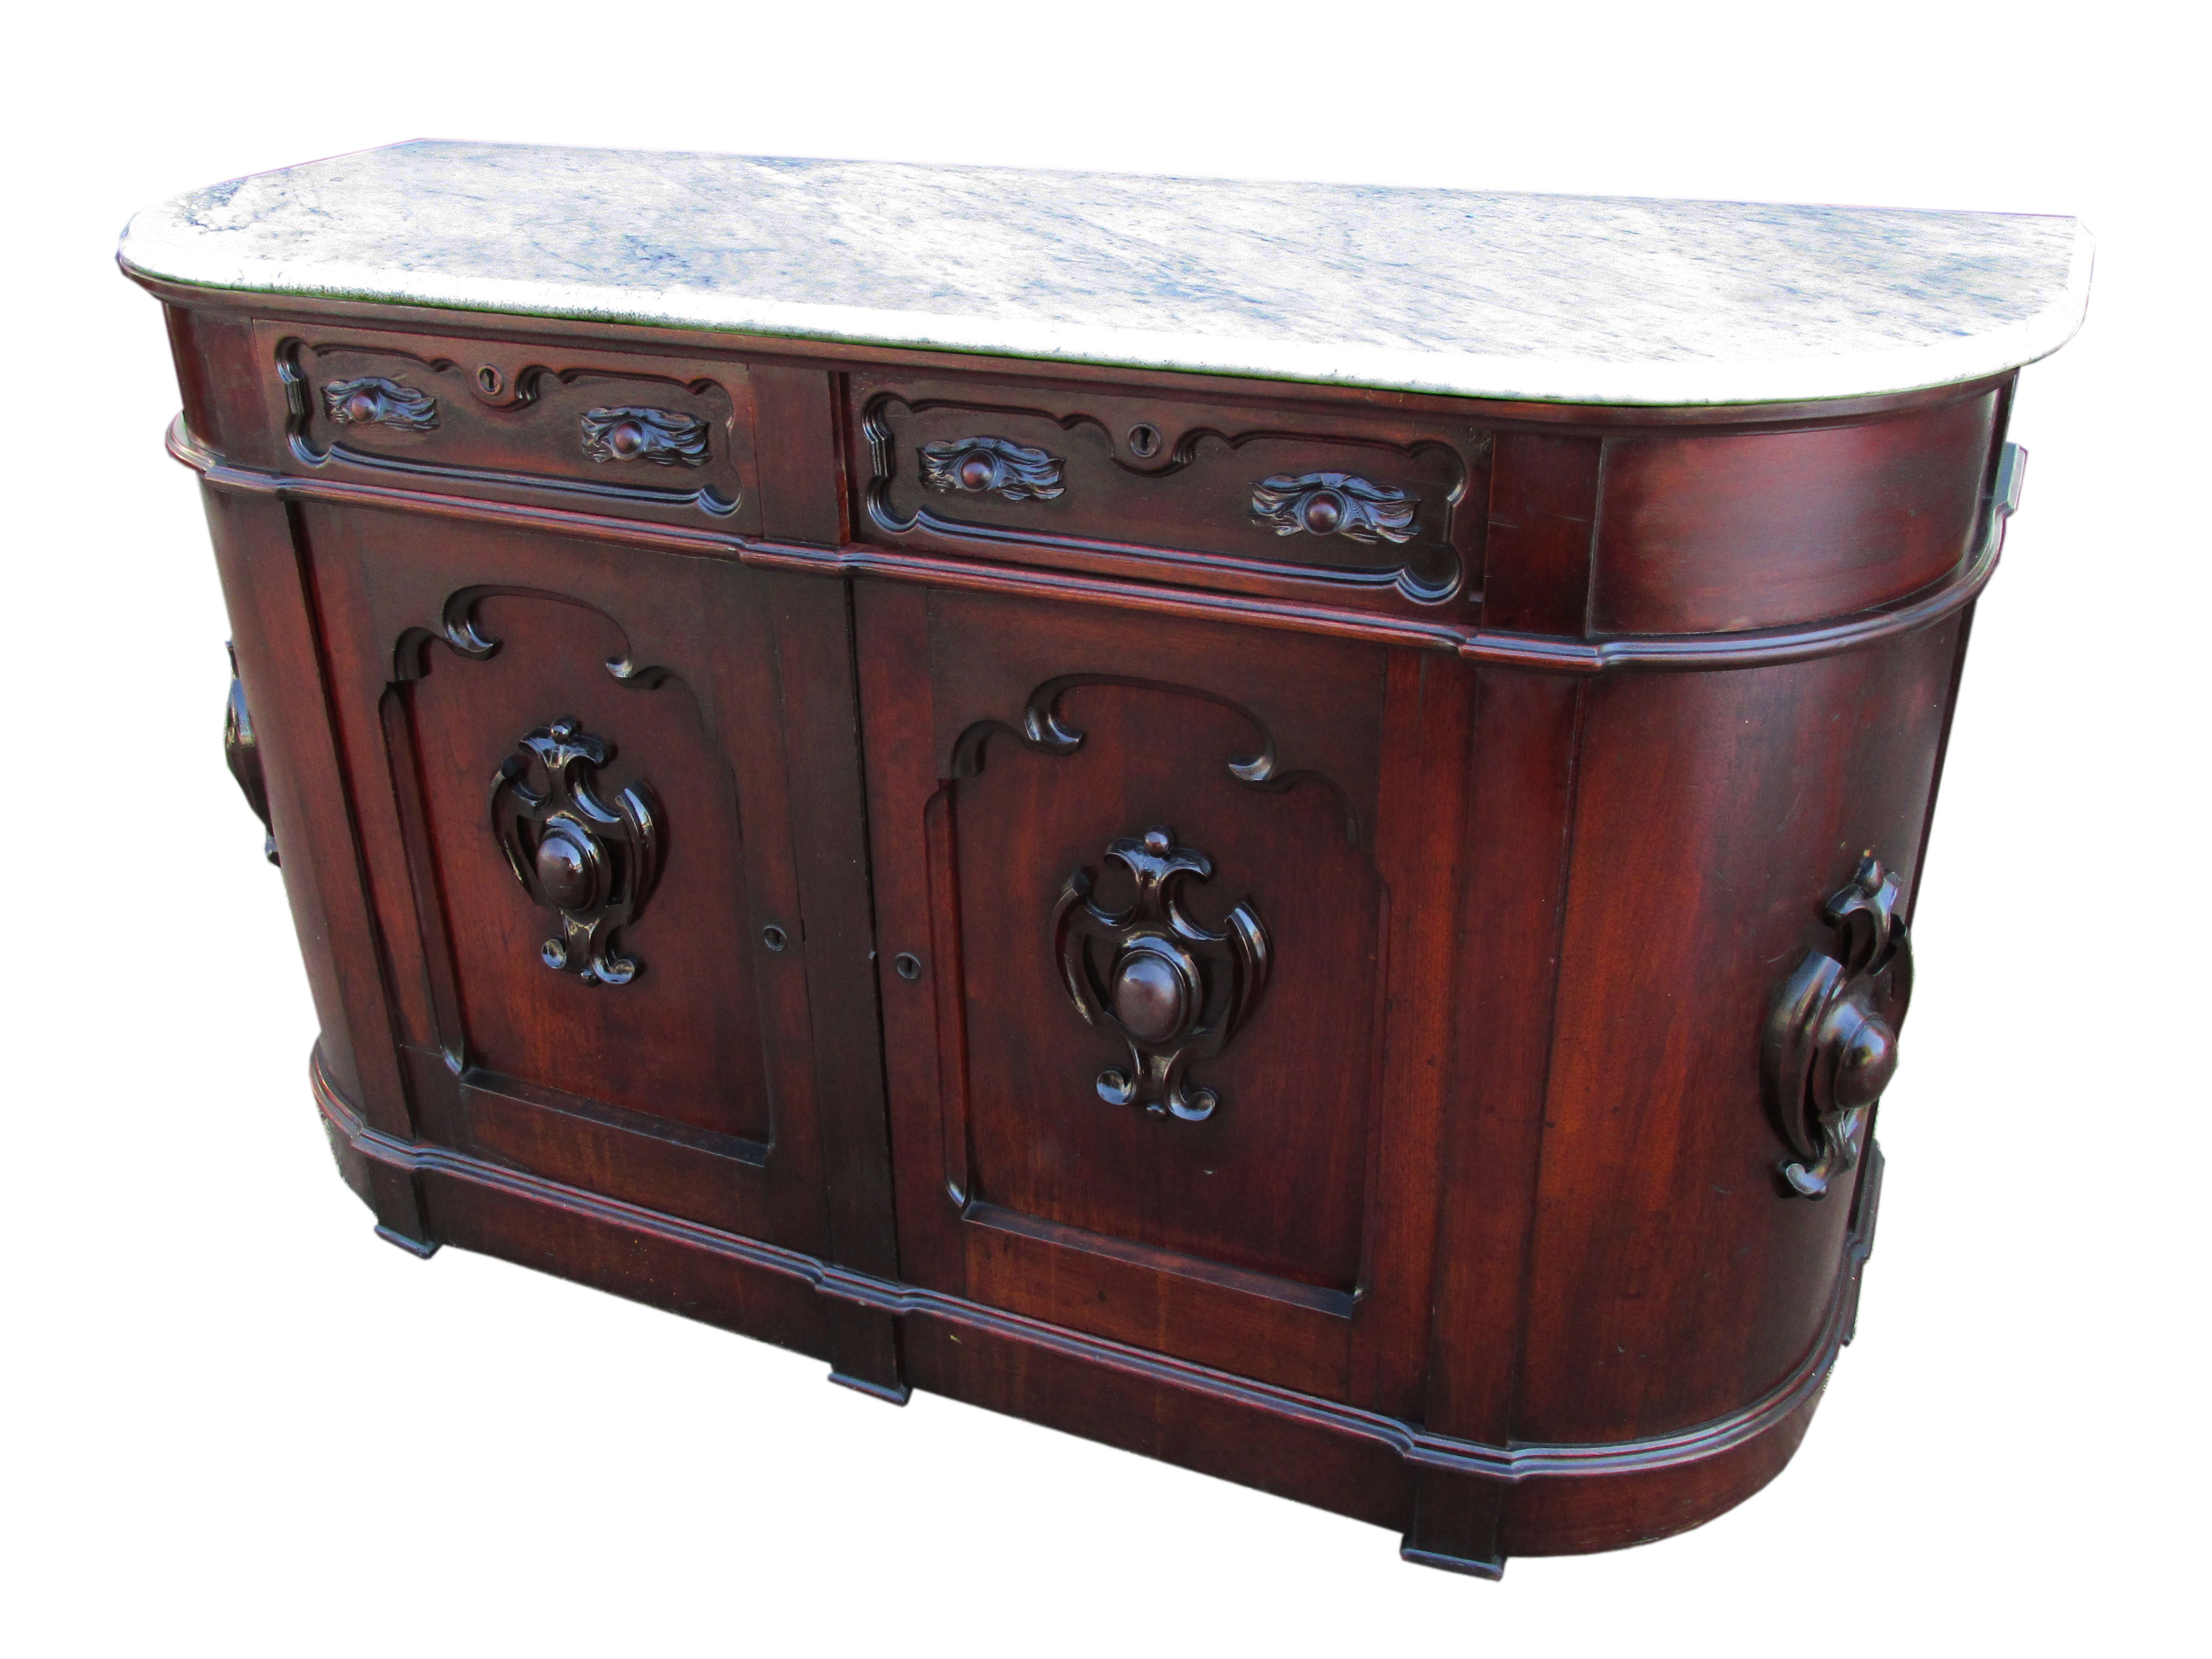 furniture-17098